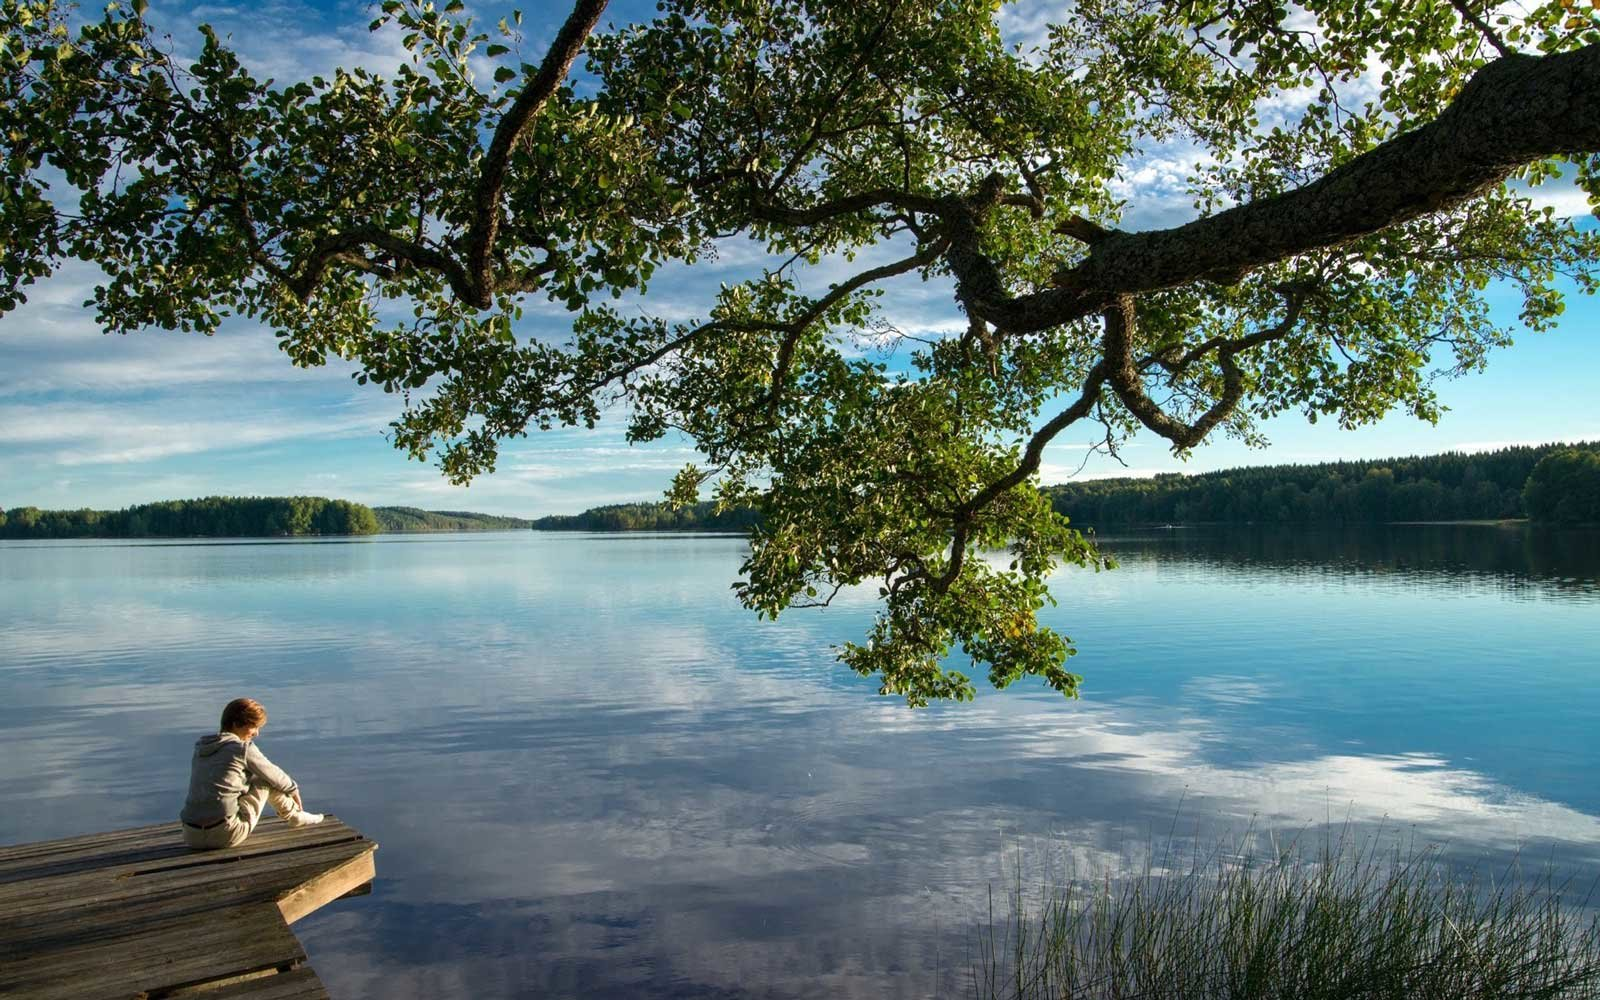 Yoga retreat guest sitting peacefully on a dock beside a lake in Sweden